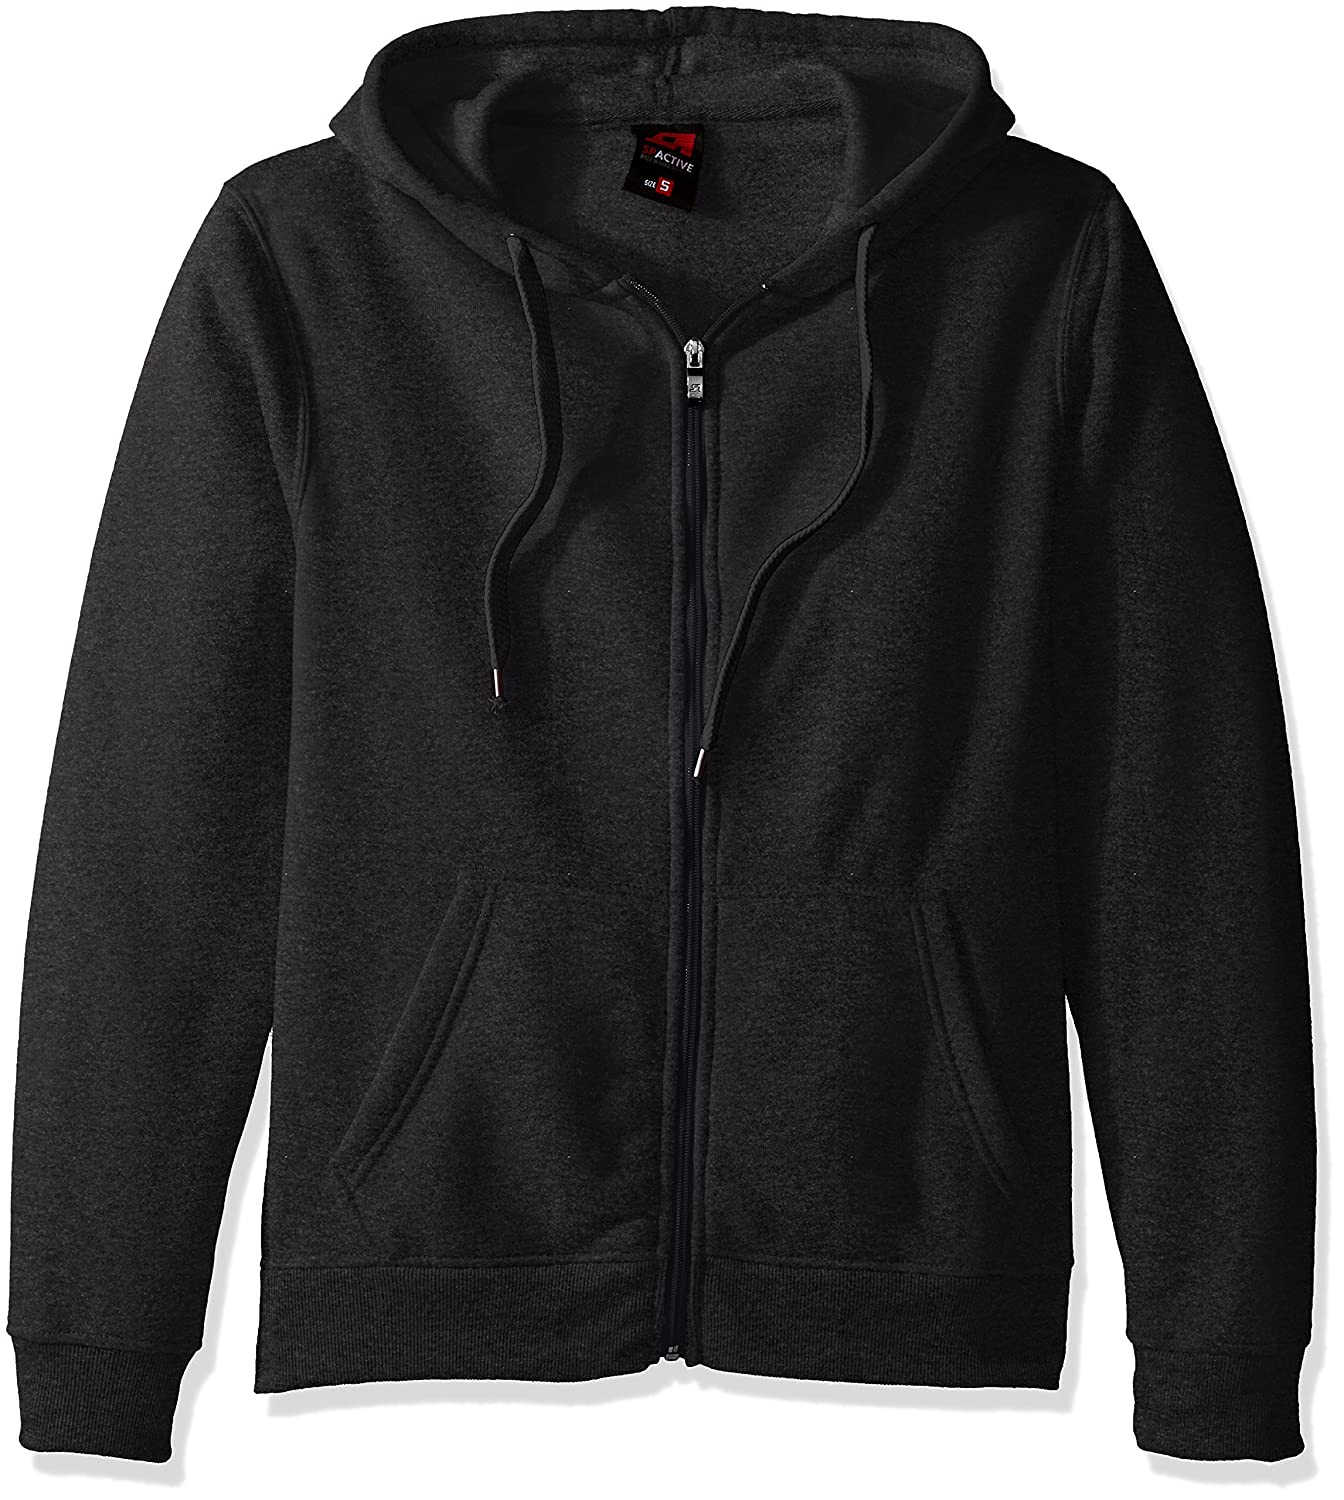 Southpole Mens Active Basic Hooded Full Zip Fleece in Premium Fabric